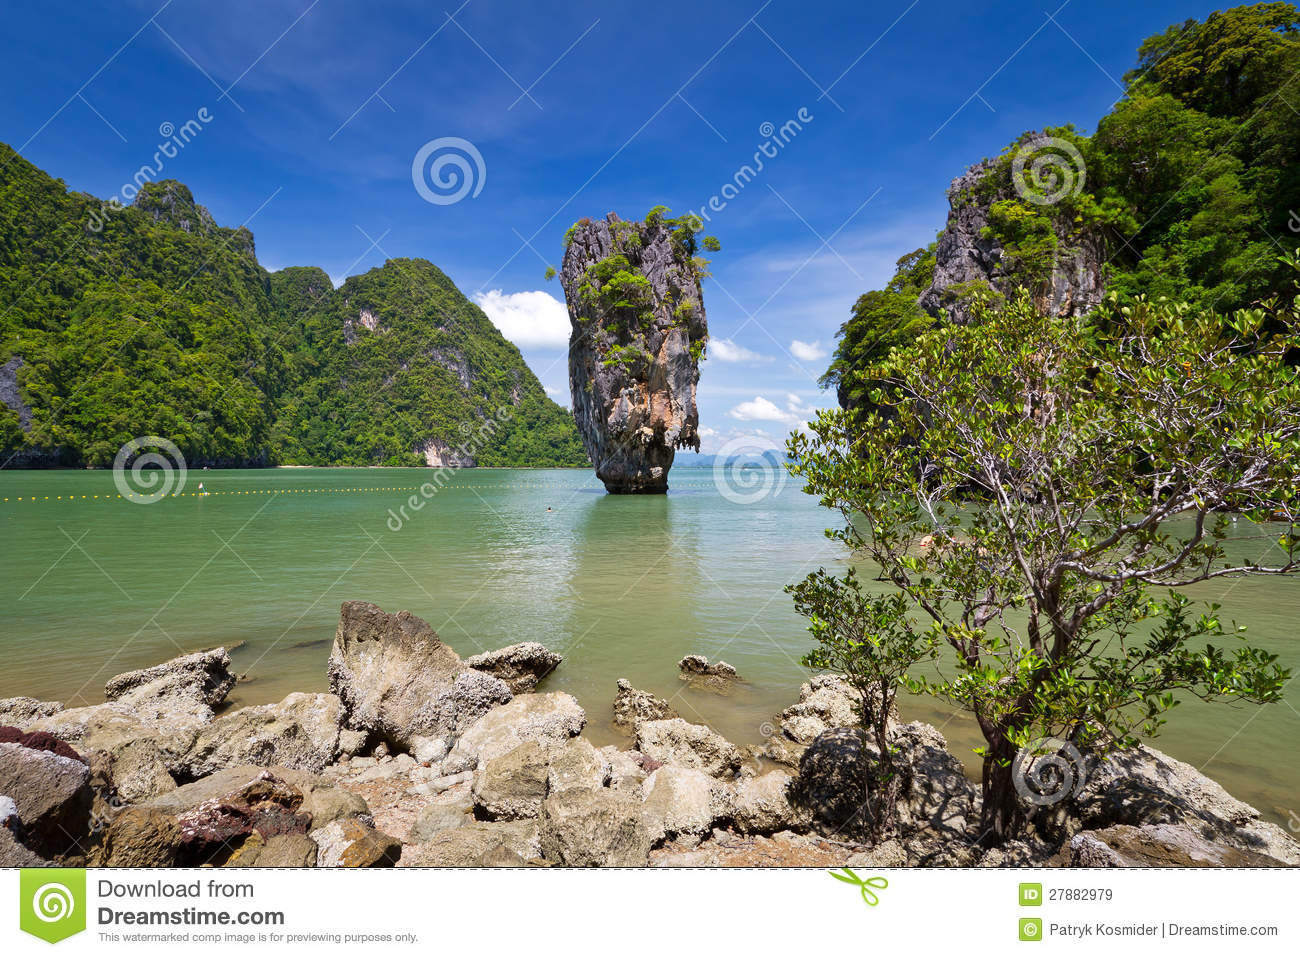 Khao Phing Kan clipart #8, Download drawings